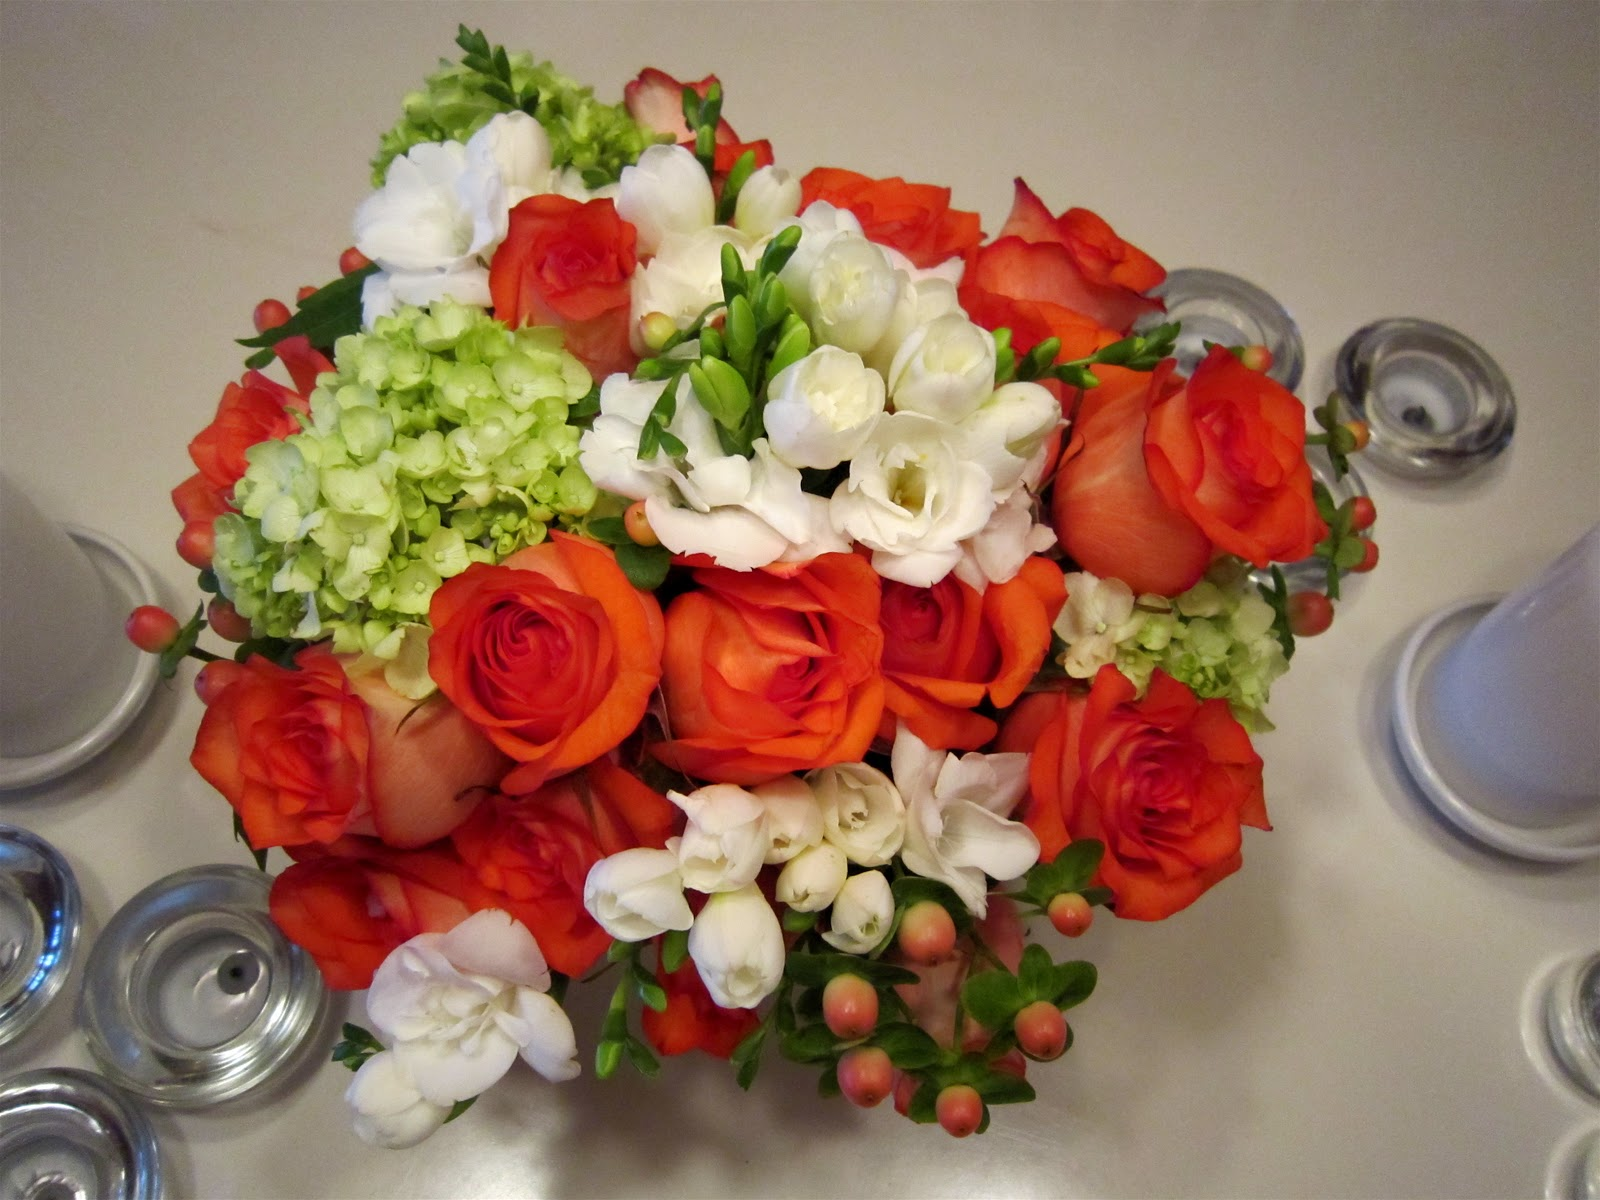 Party Resources: Flowers on a Budget